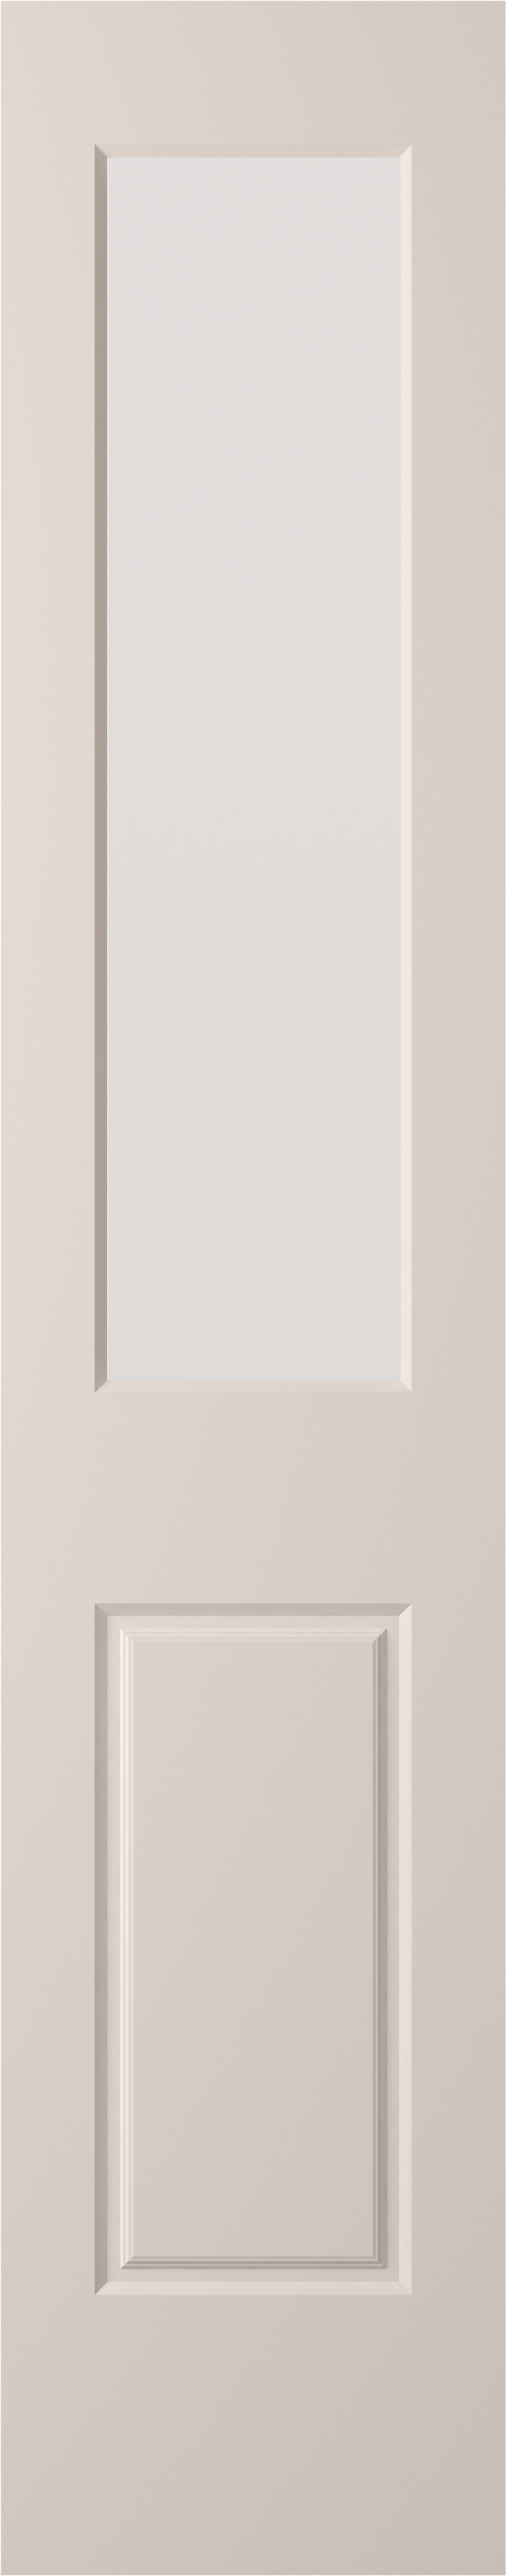 Corinthian Solidcarve Primed Sidelight Featuring 1 Panels/1 Light Panel